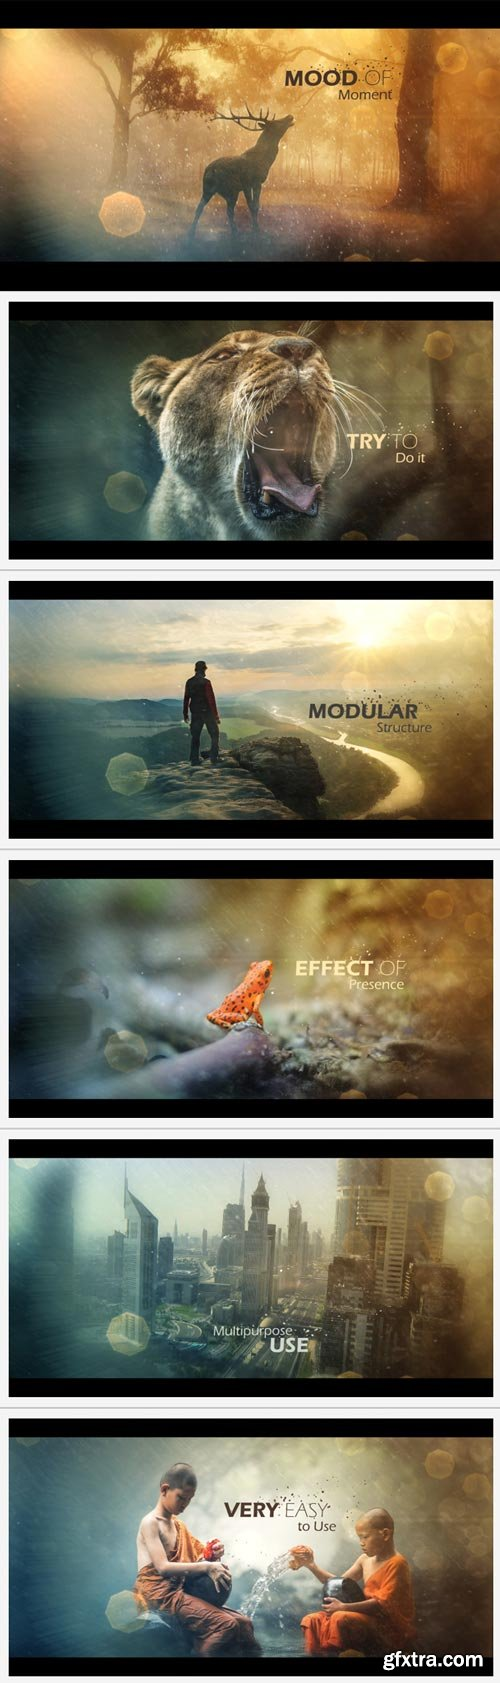 Videohive - Mood Of Moments Parallax Opener - 20672854